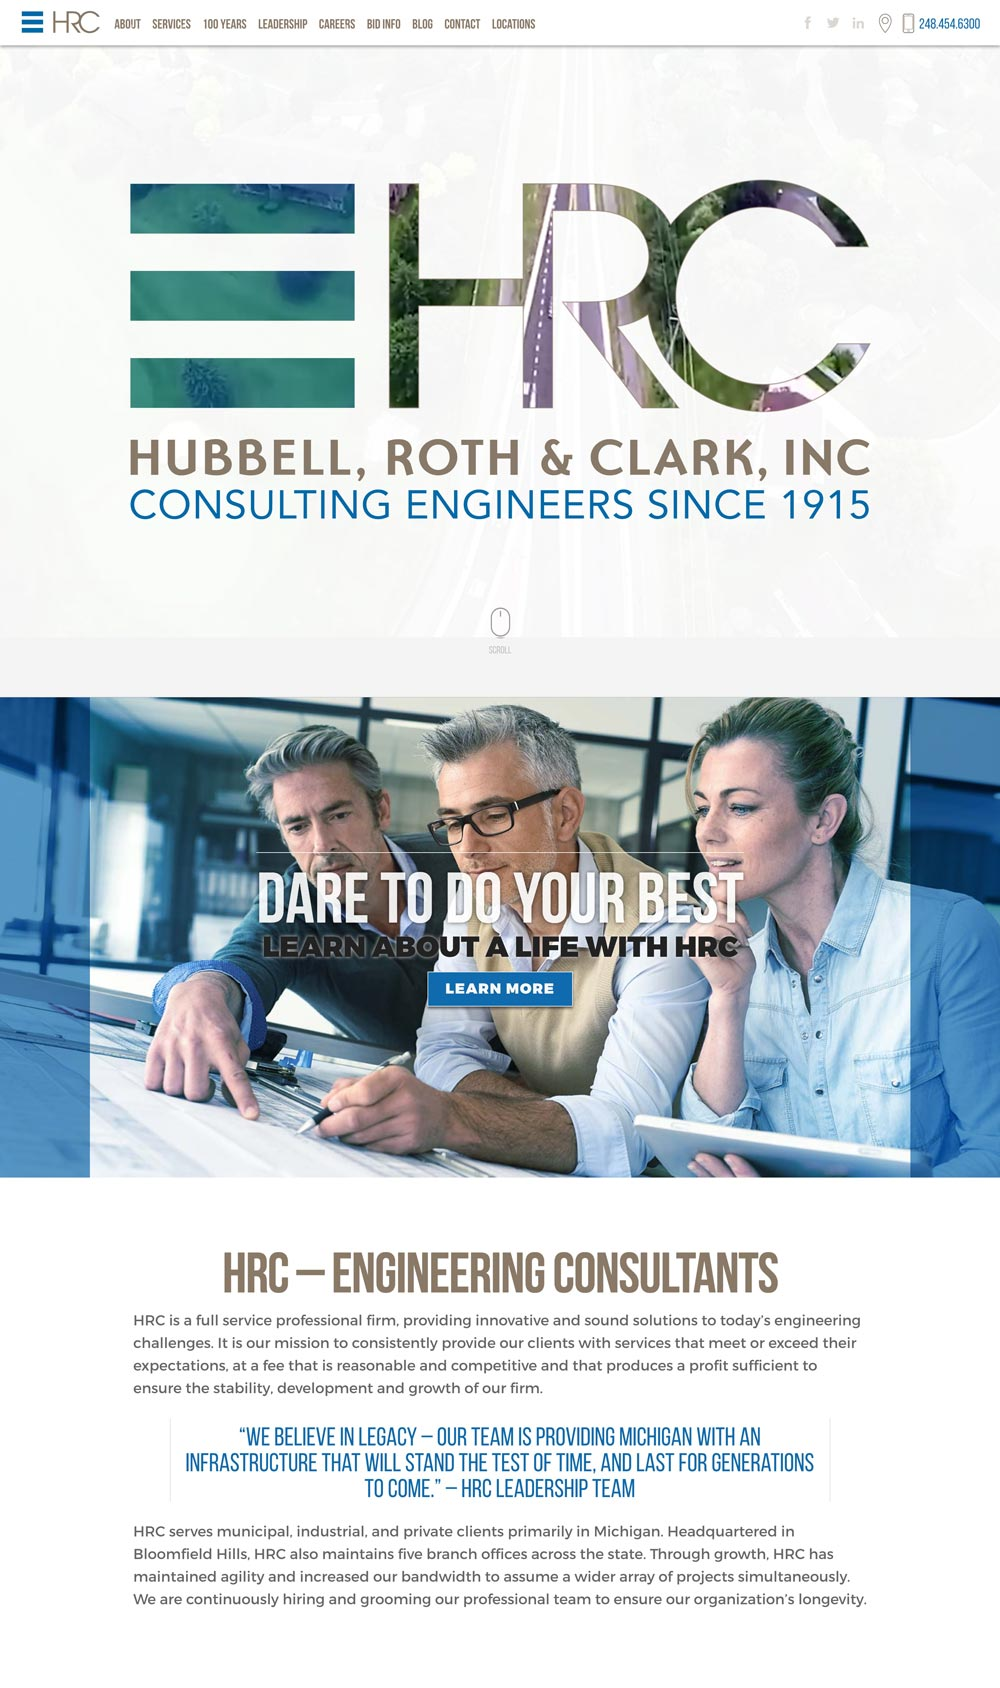 hubbell, roth and clark website homepage